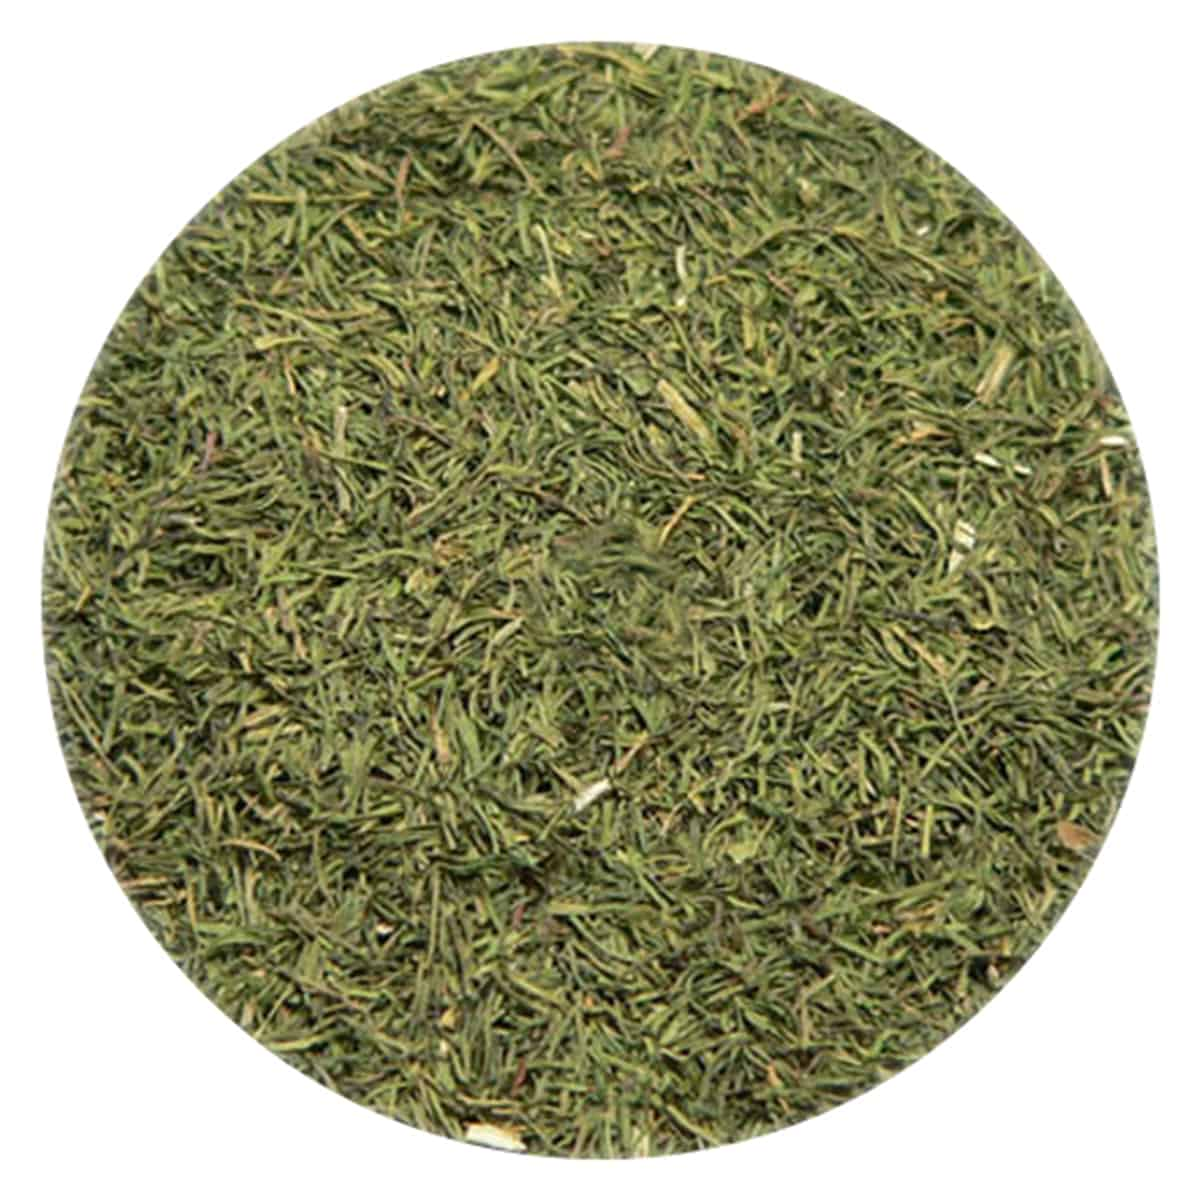 Buy IAG Foods Dried Dill Leaves (Dill Weed / Dill Tips) - 1 kg